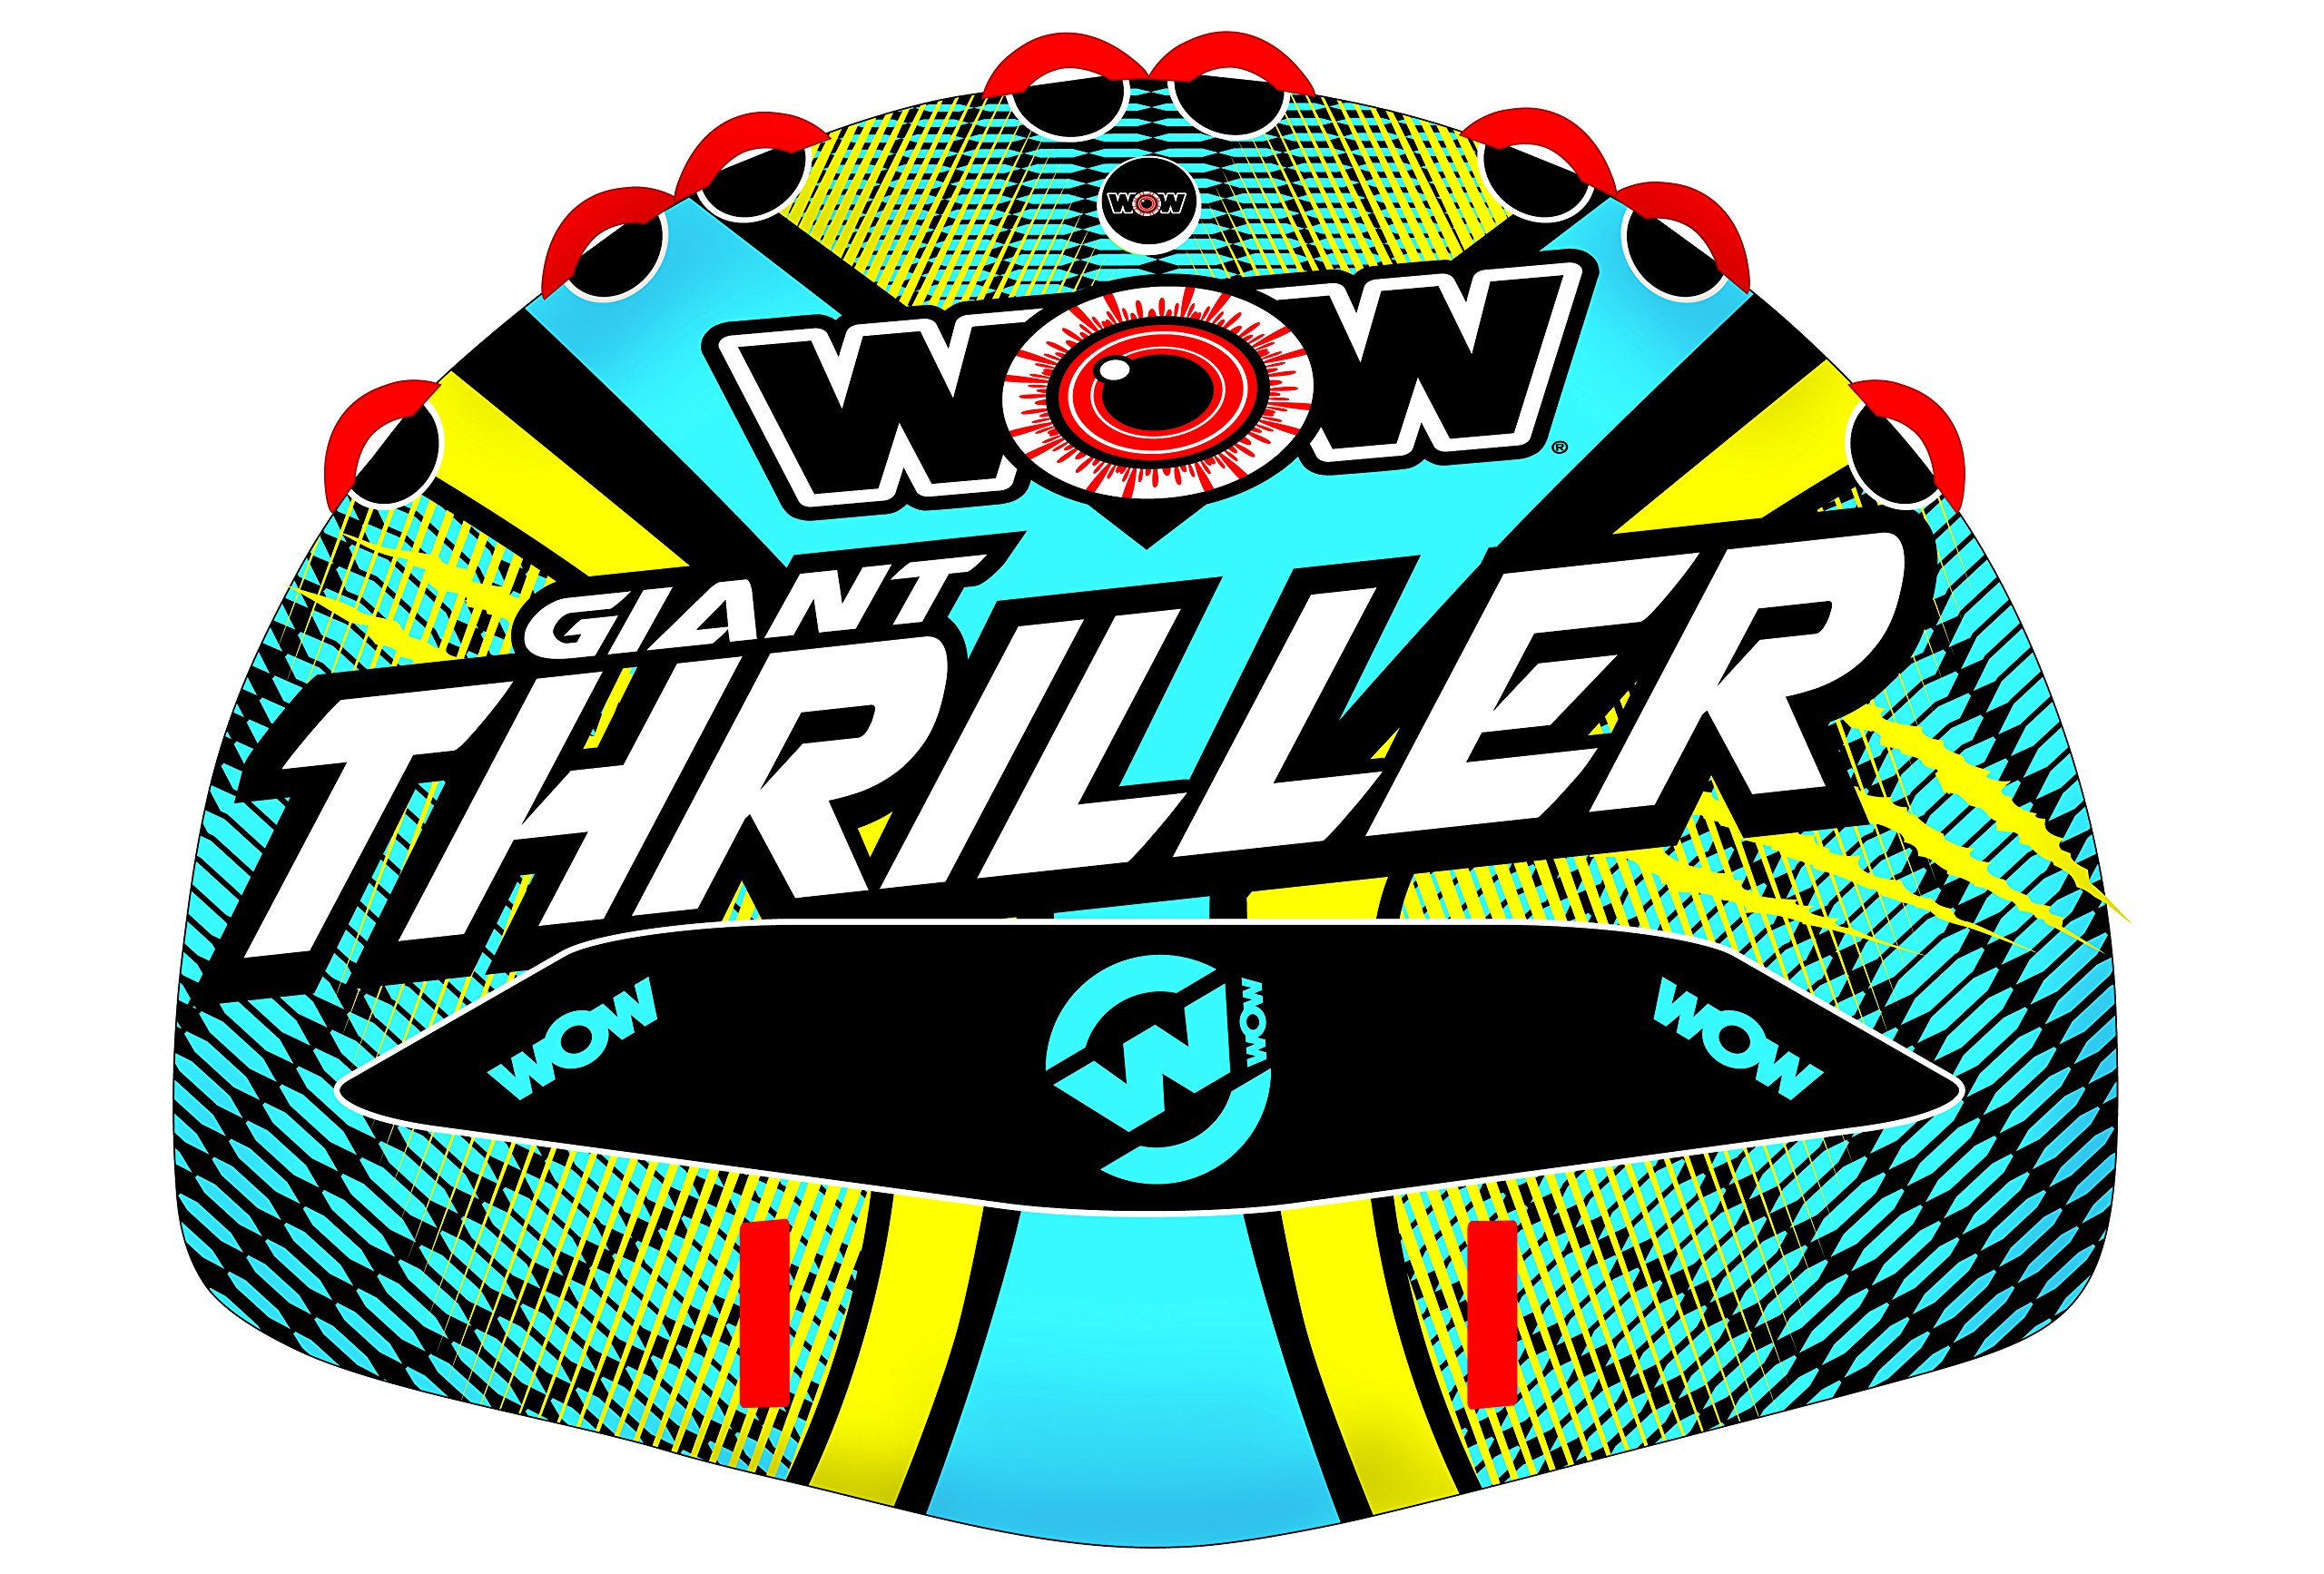 Wow Watersports Thriller Deck Tube Water Towable Tube Inflatable Boat Tube, Wild Wake Action - Water Sports Inflatables - Towable Tube for Boating 4 Person by WOW Sports